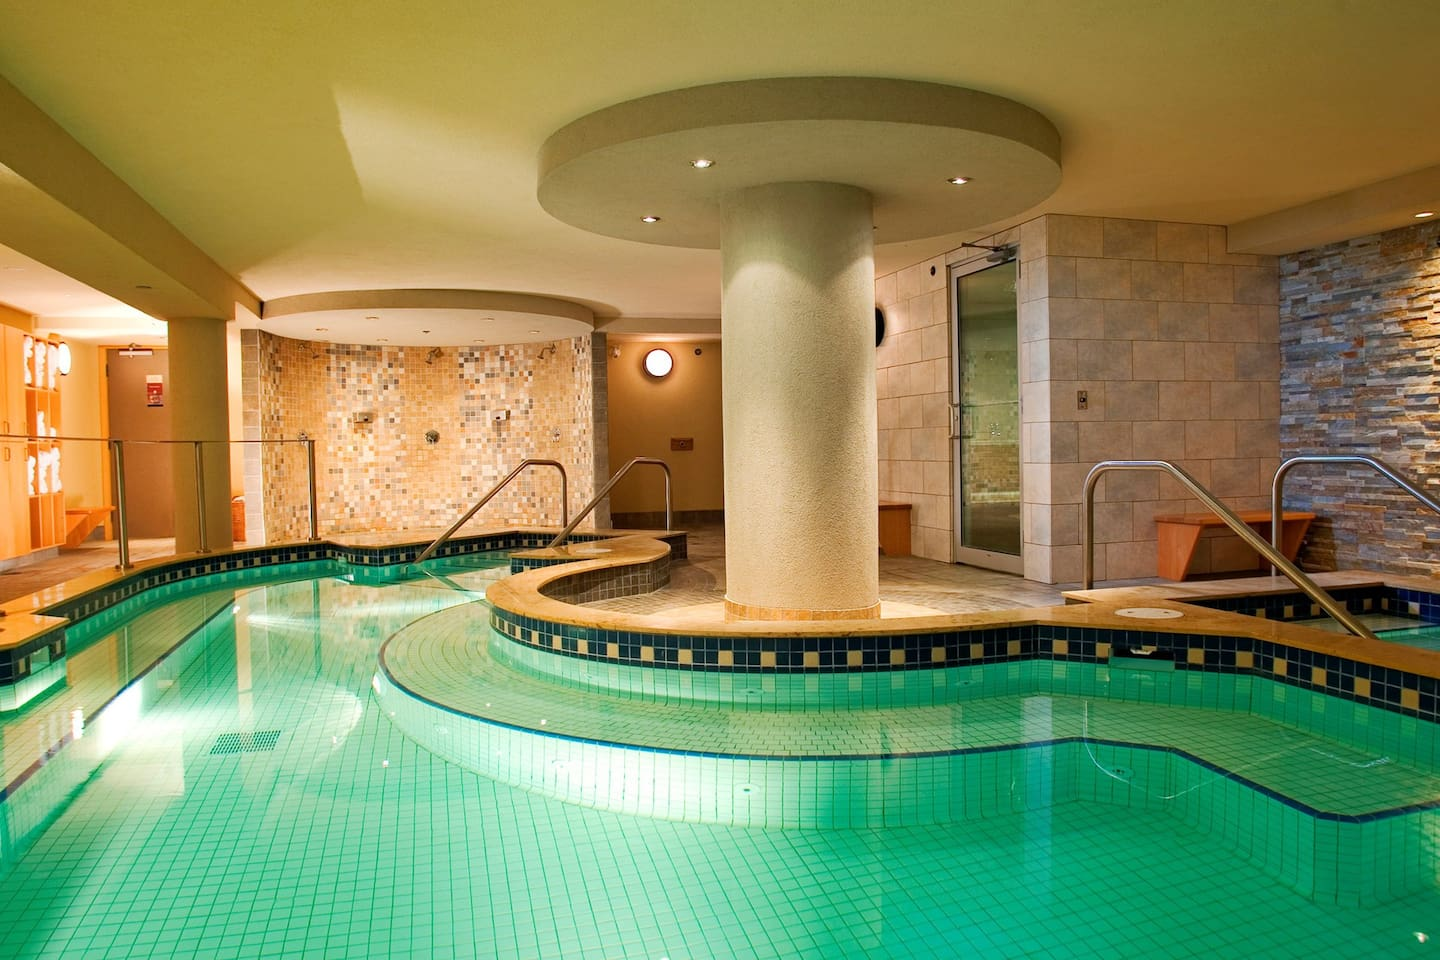 The lodge has a hot pool and sauna for guests to enjoy.